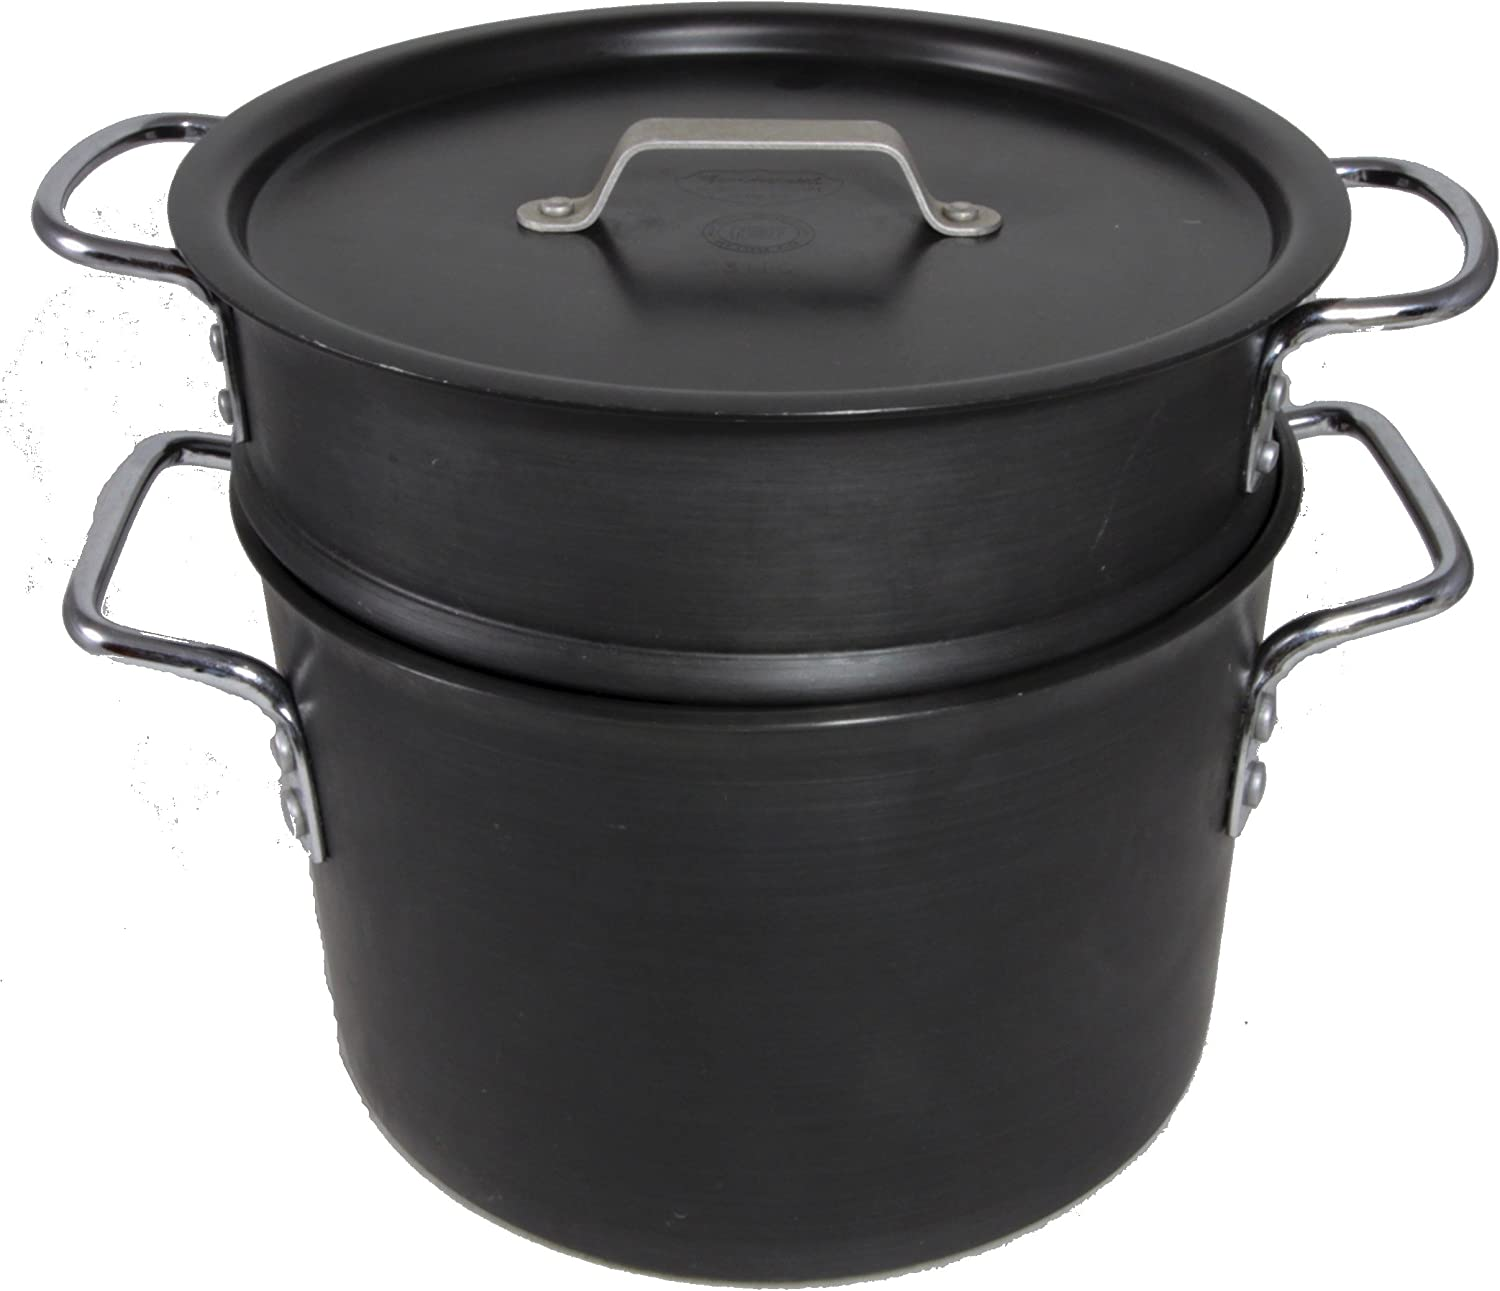 Commercial Aluminum Cookware Hard Anodized Dutch Oven, Double D-Handles, 8608 8-Quart, w/Insert and Lid